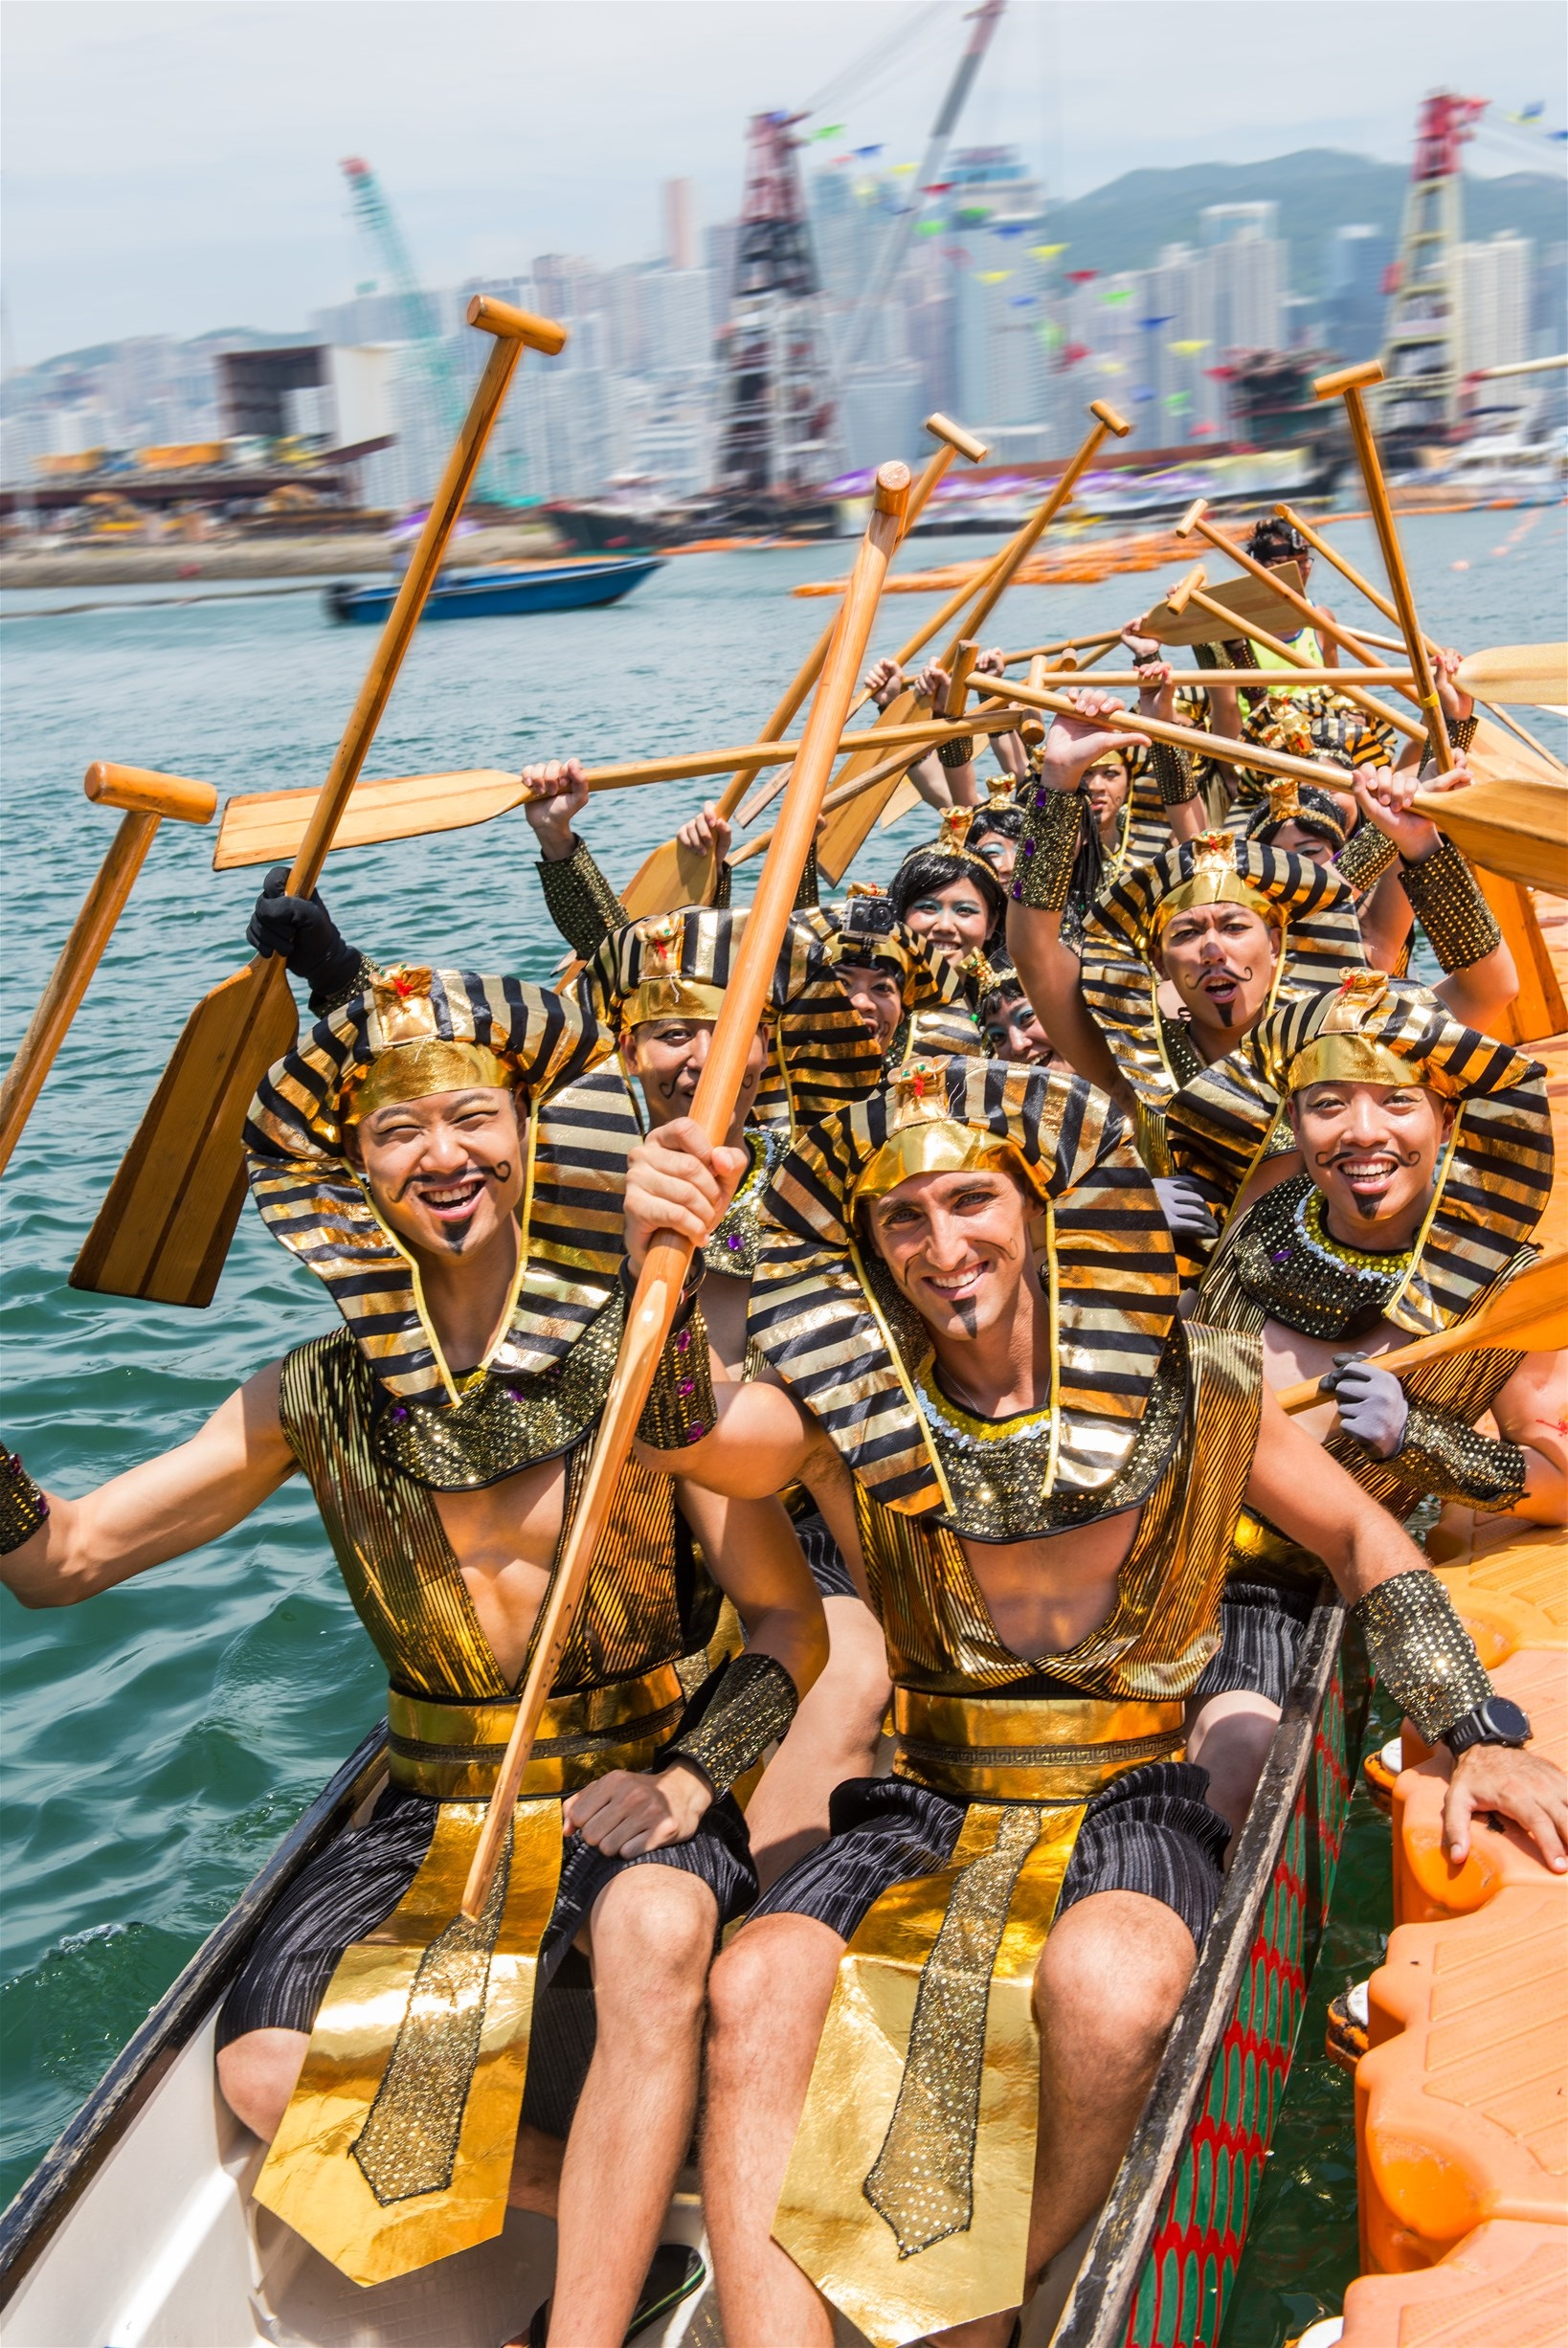 Paddlers dress up in fancy 'uniform' trying to attract audience's eyeballs.